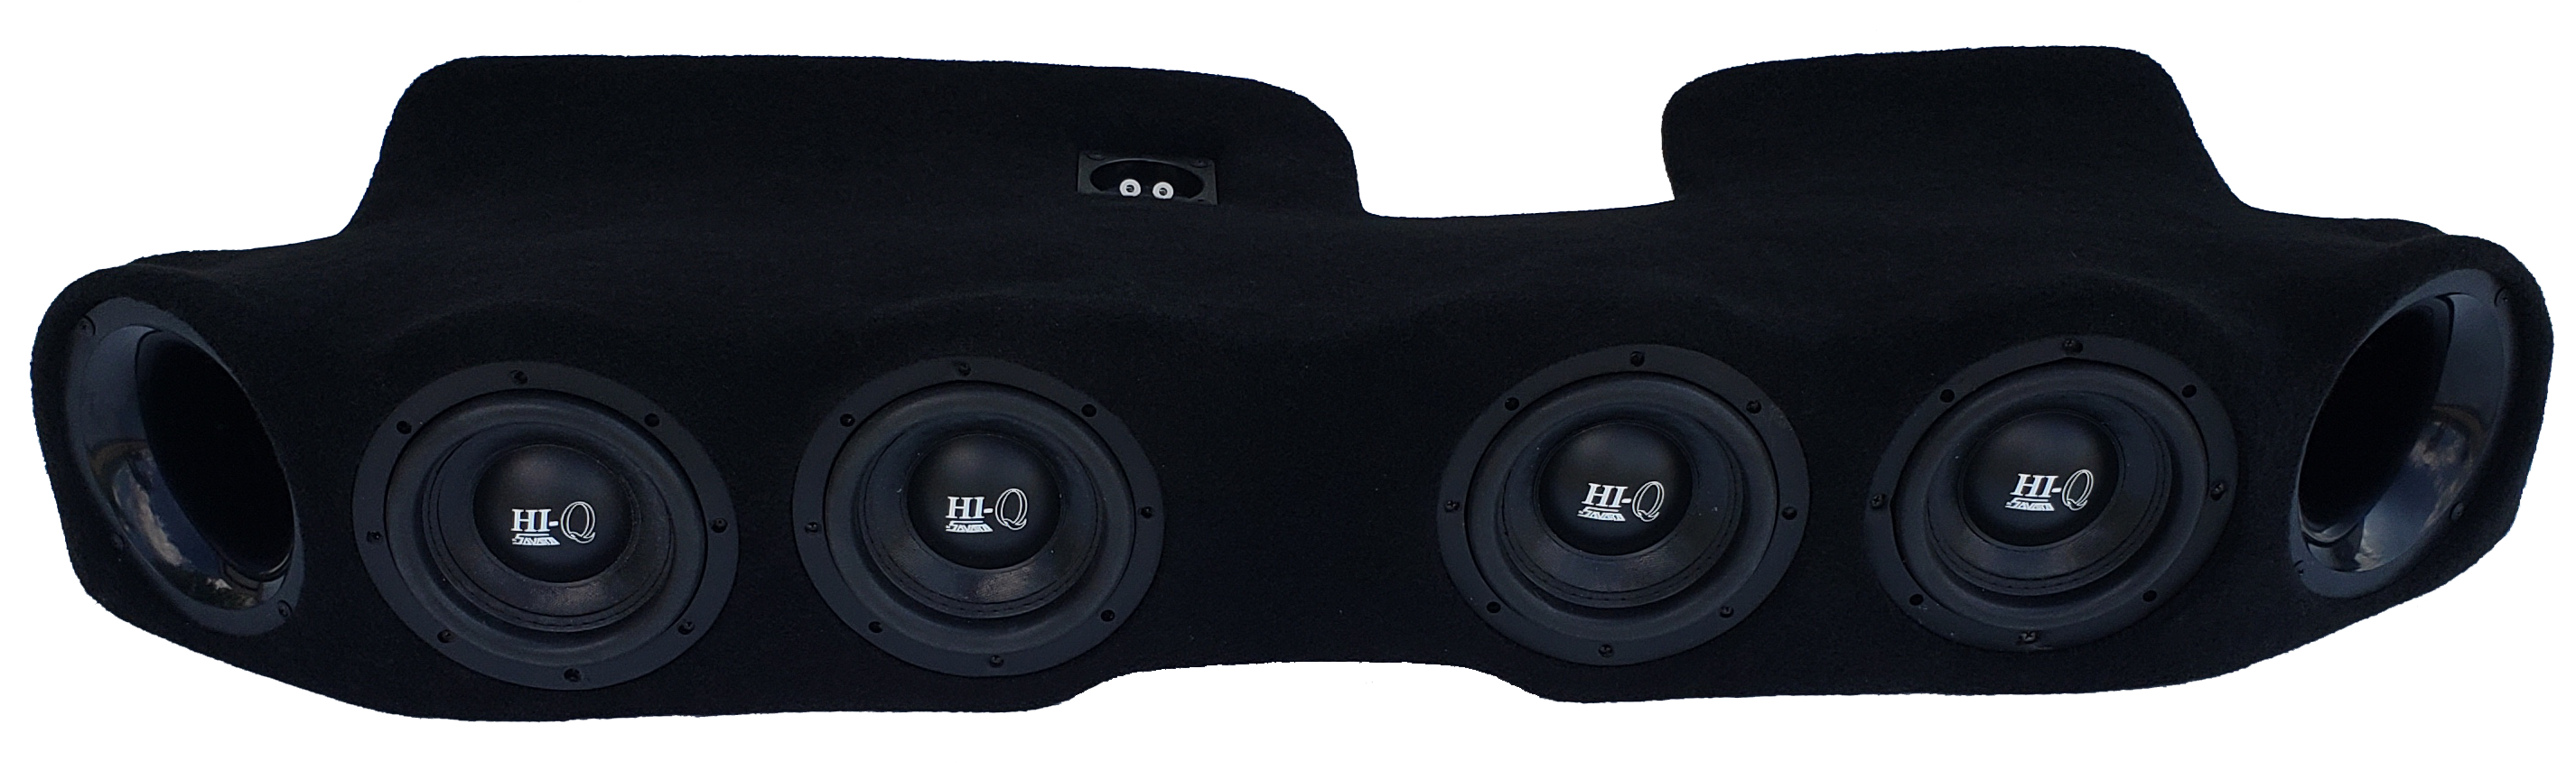 "2020 Jeep Gladiator QUAD 6.5"" Ported Subwoofer Enclosure"